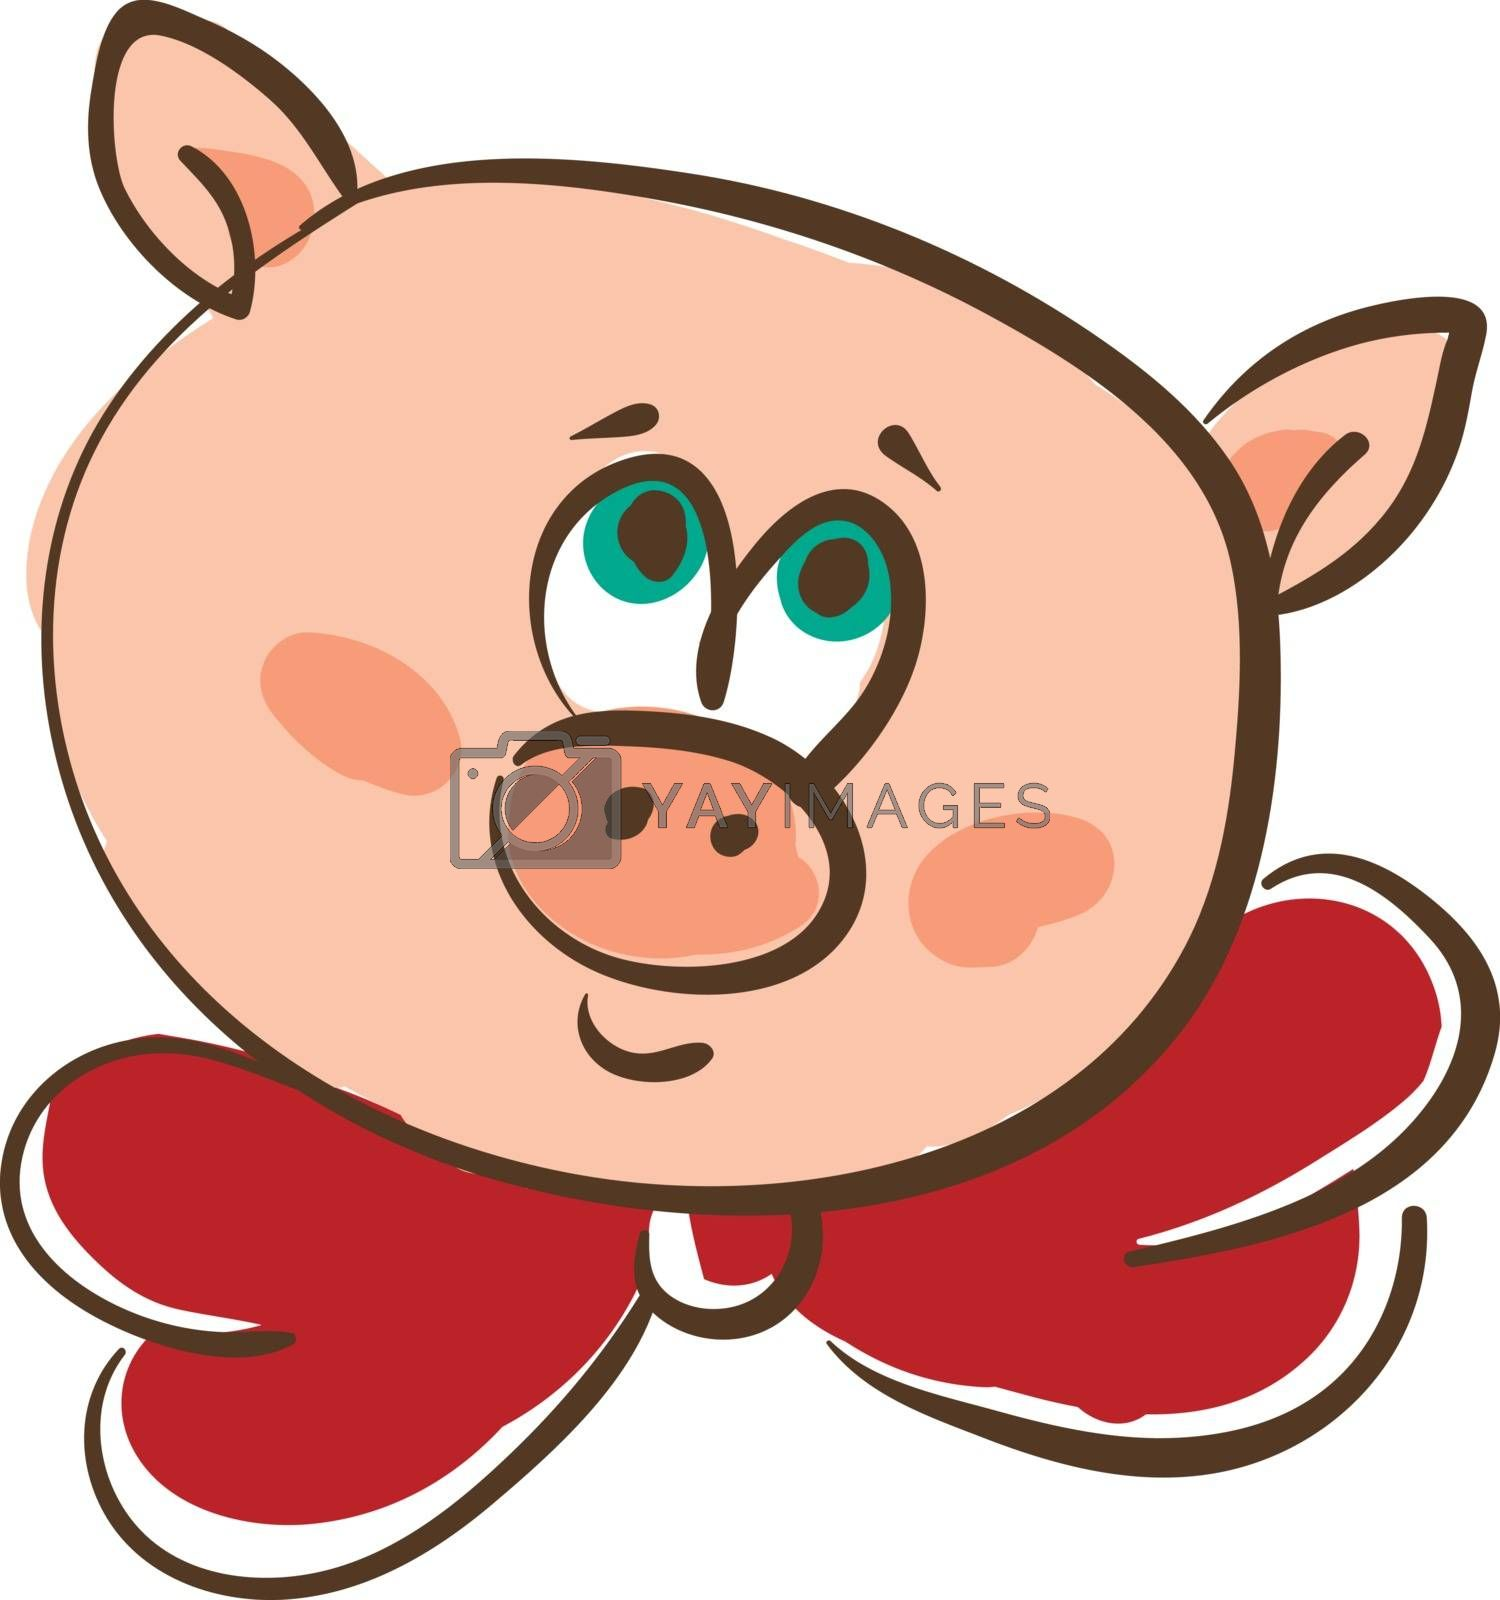 Royalty free image of Drawing of the face of a pink pig in a red-colored neck bowtie v by Morphart